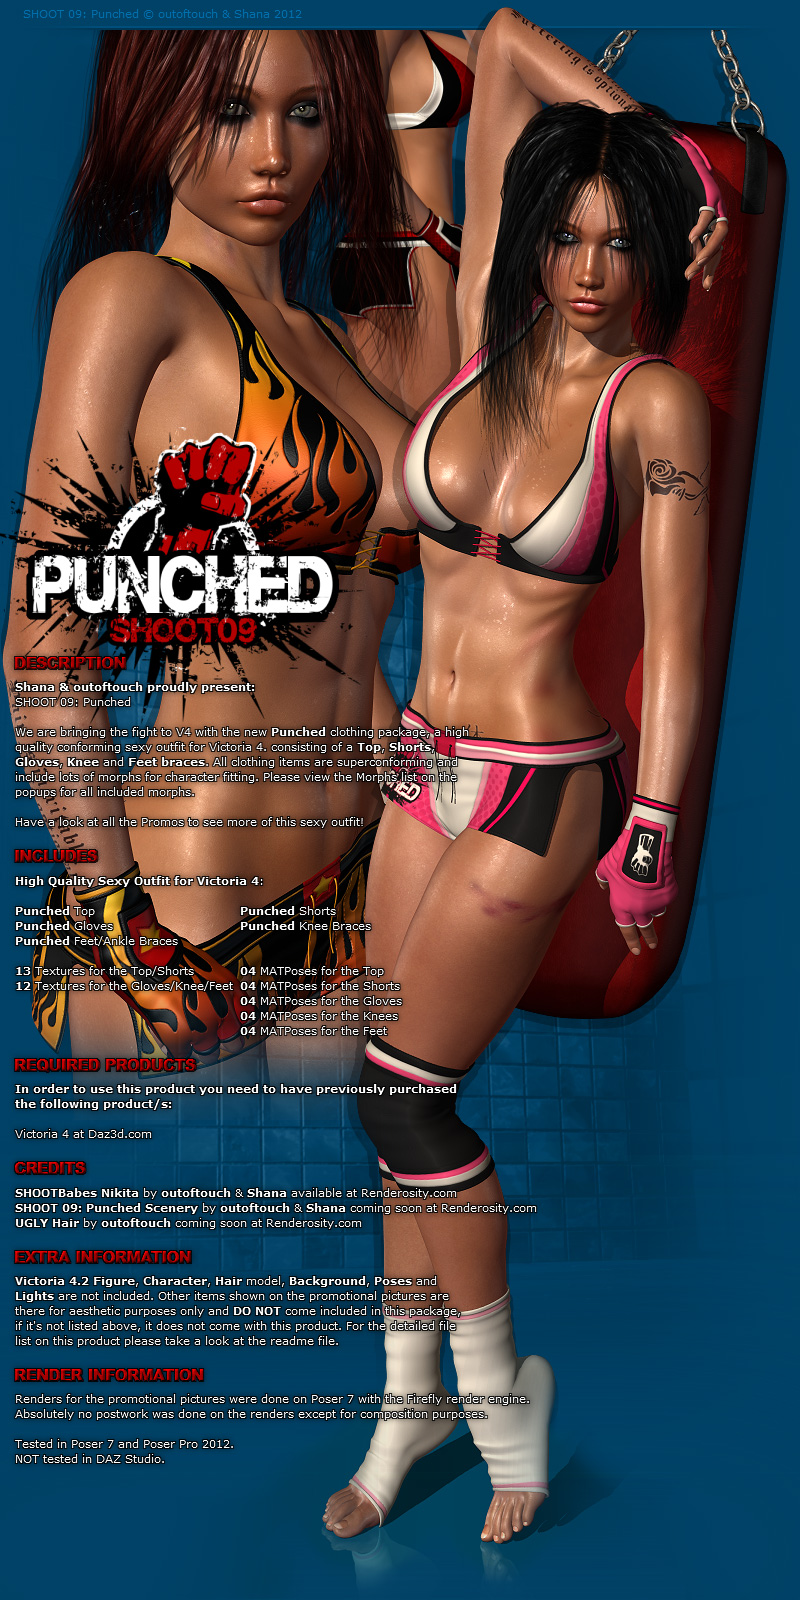 SHOOT 09: Punched